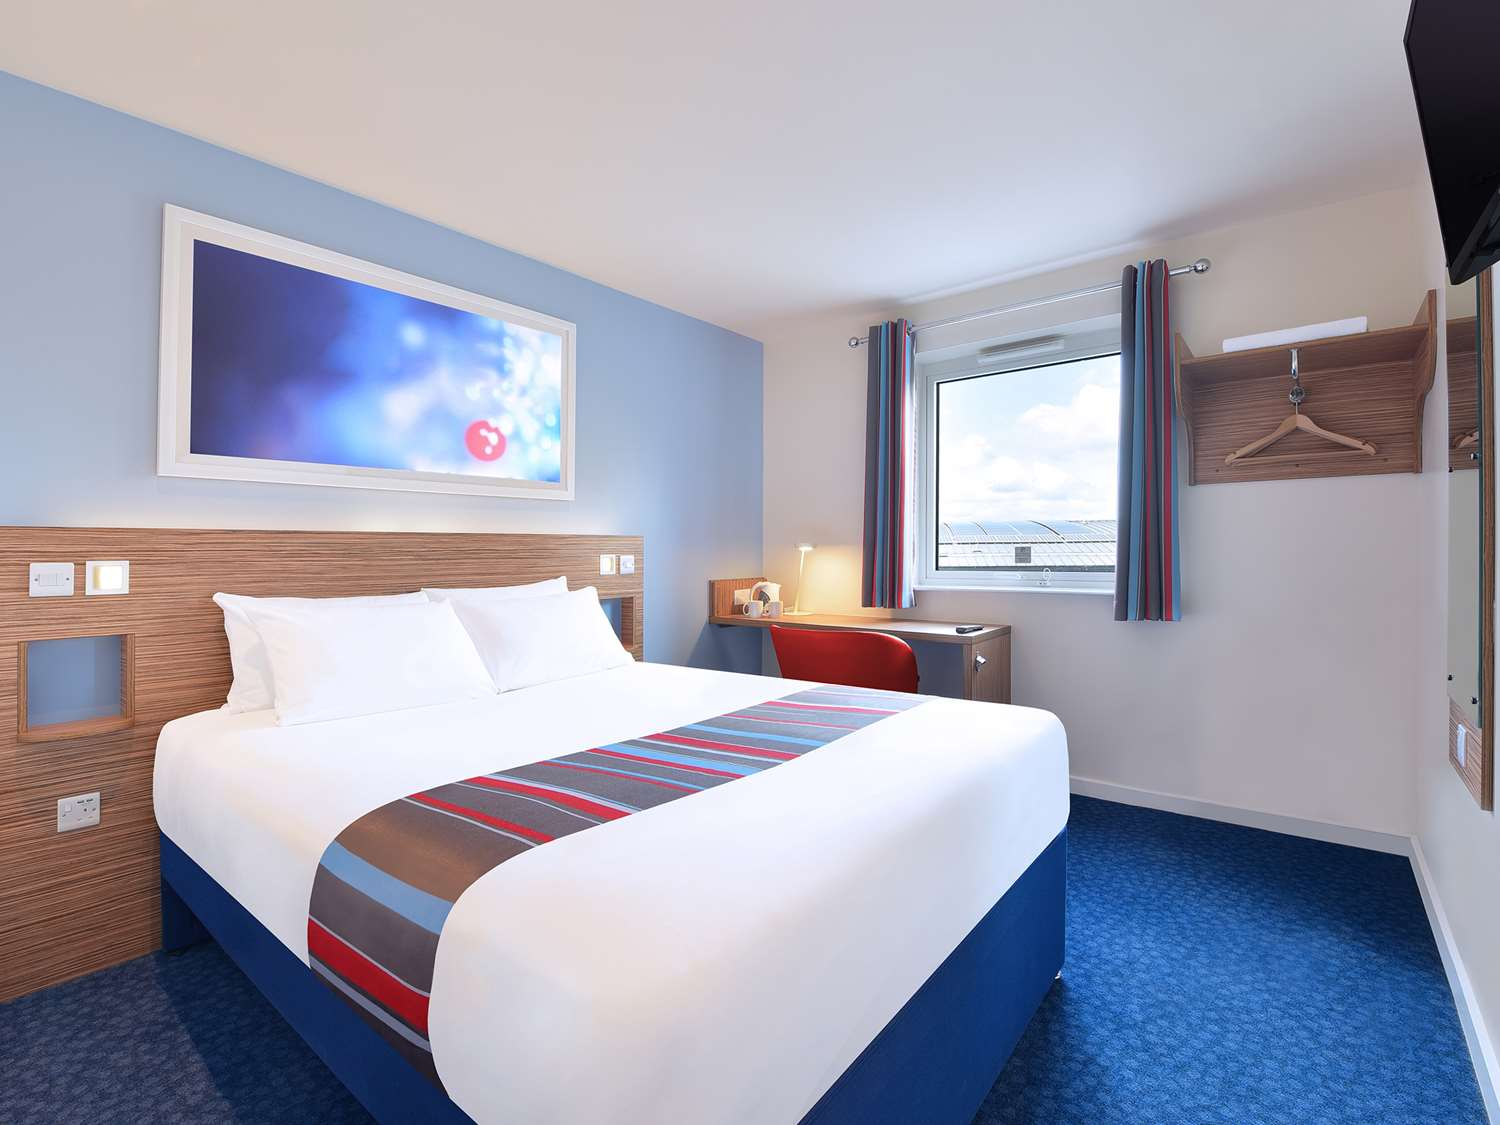 new hotel standard retouched x